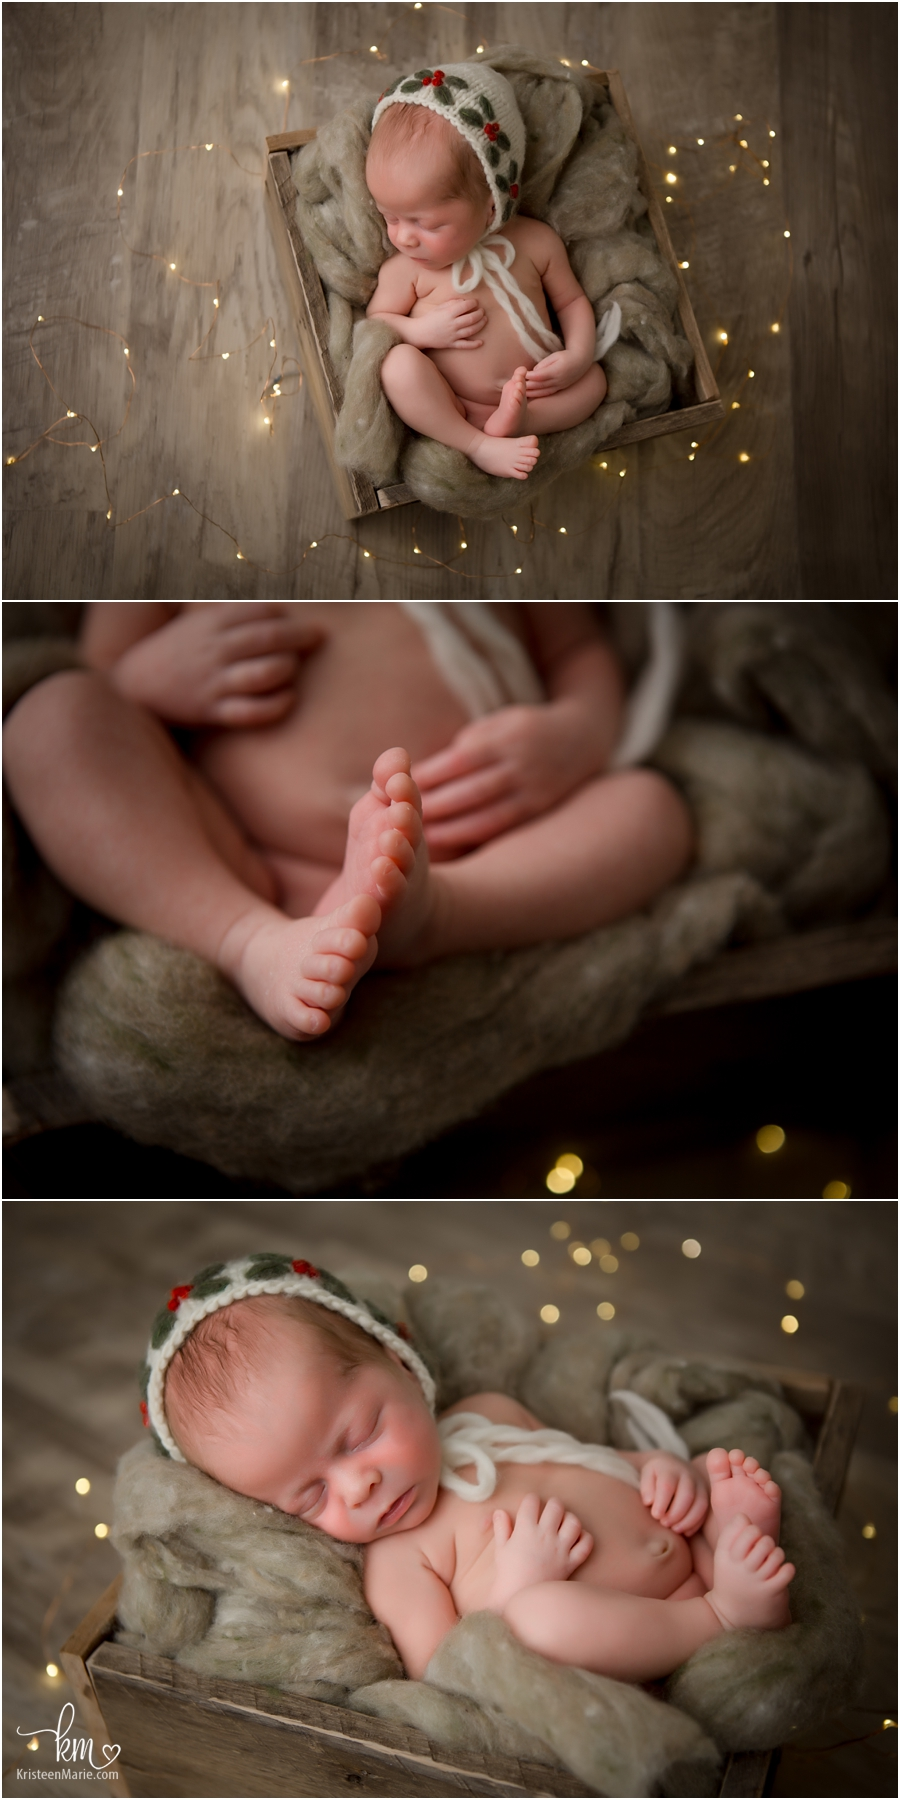 Christmas themed newborn baby pictures - green with wood floors and Christmas lights